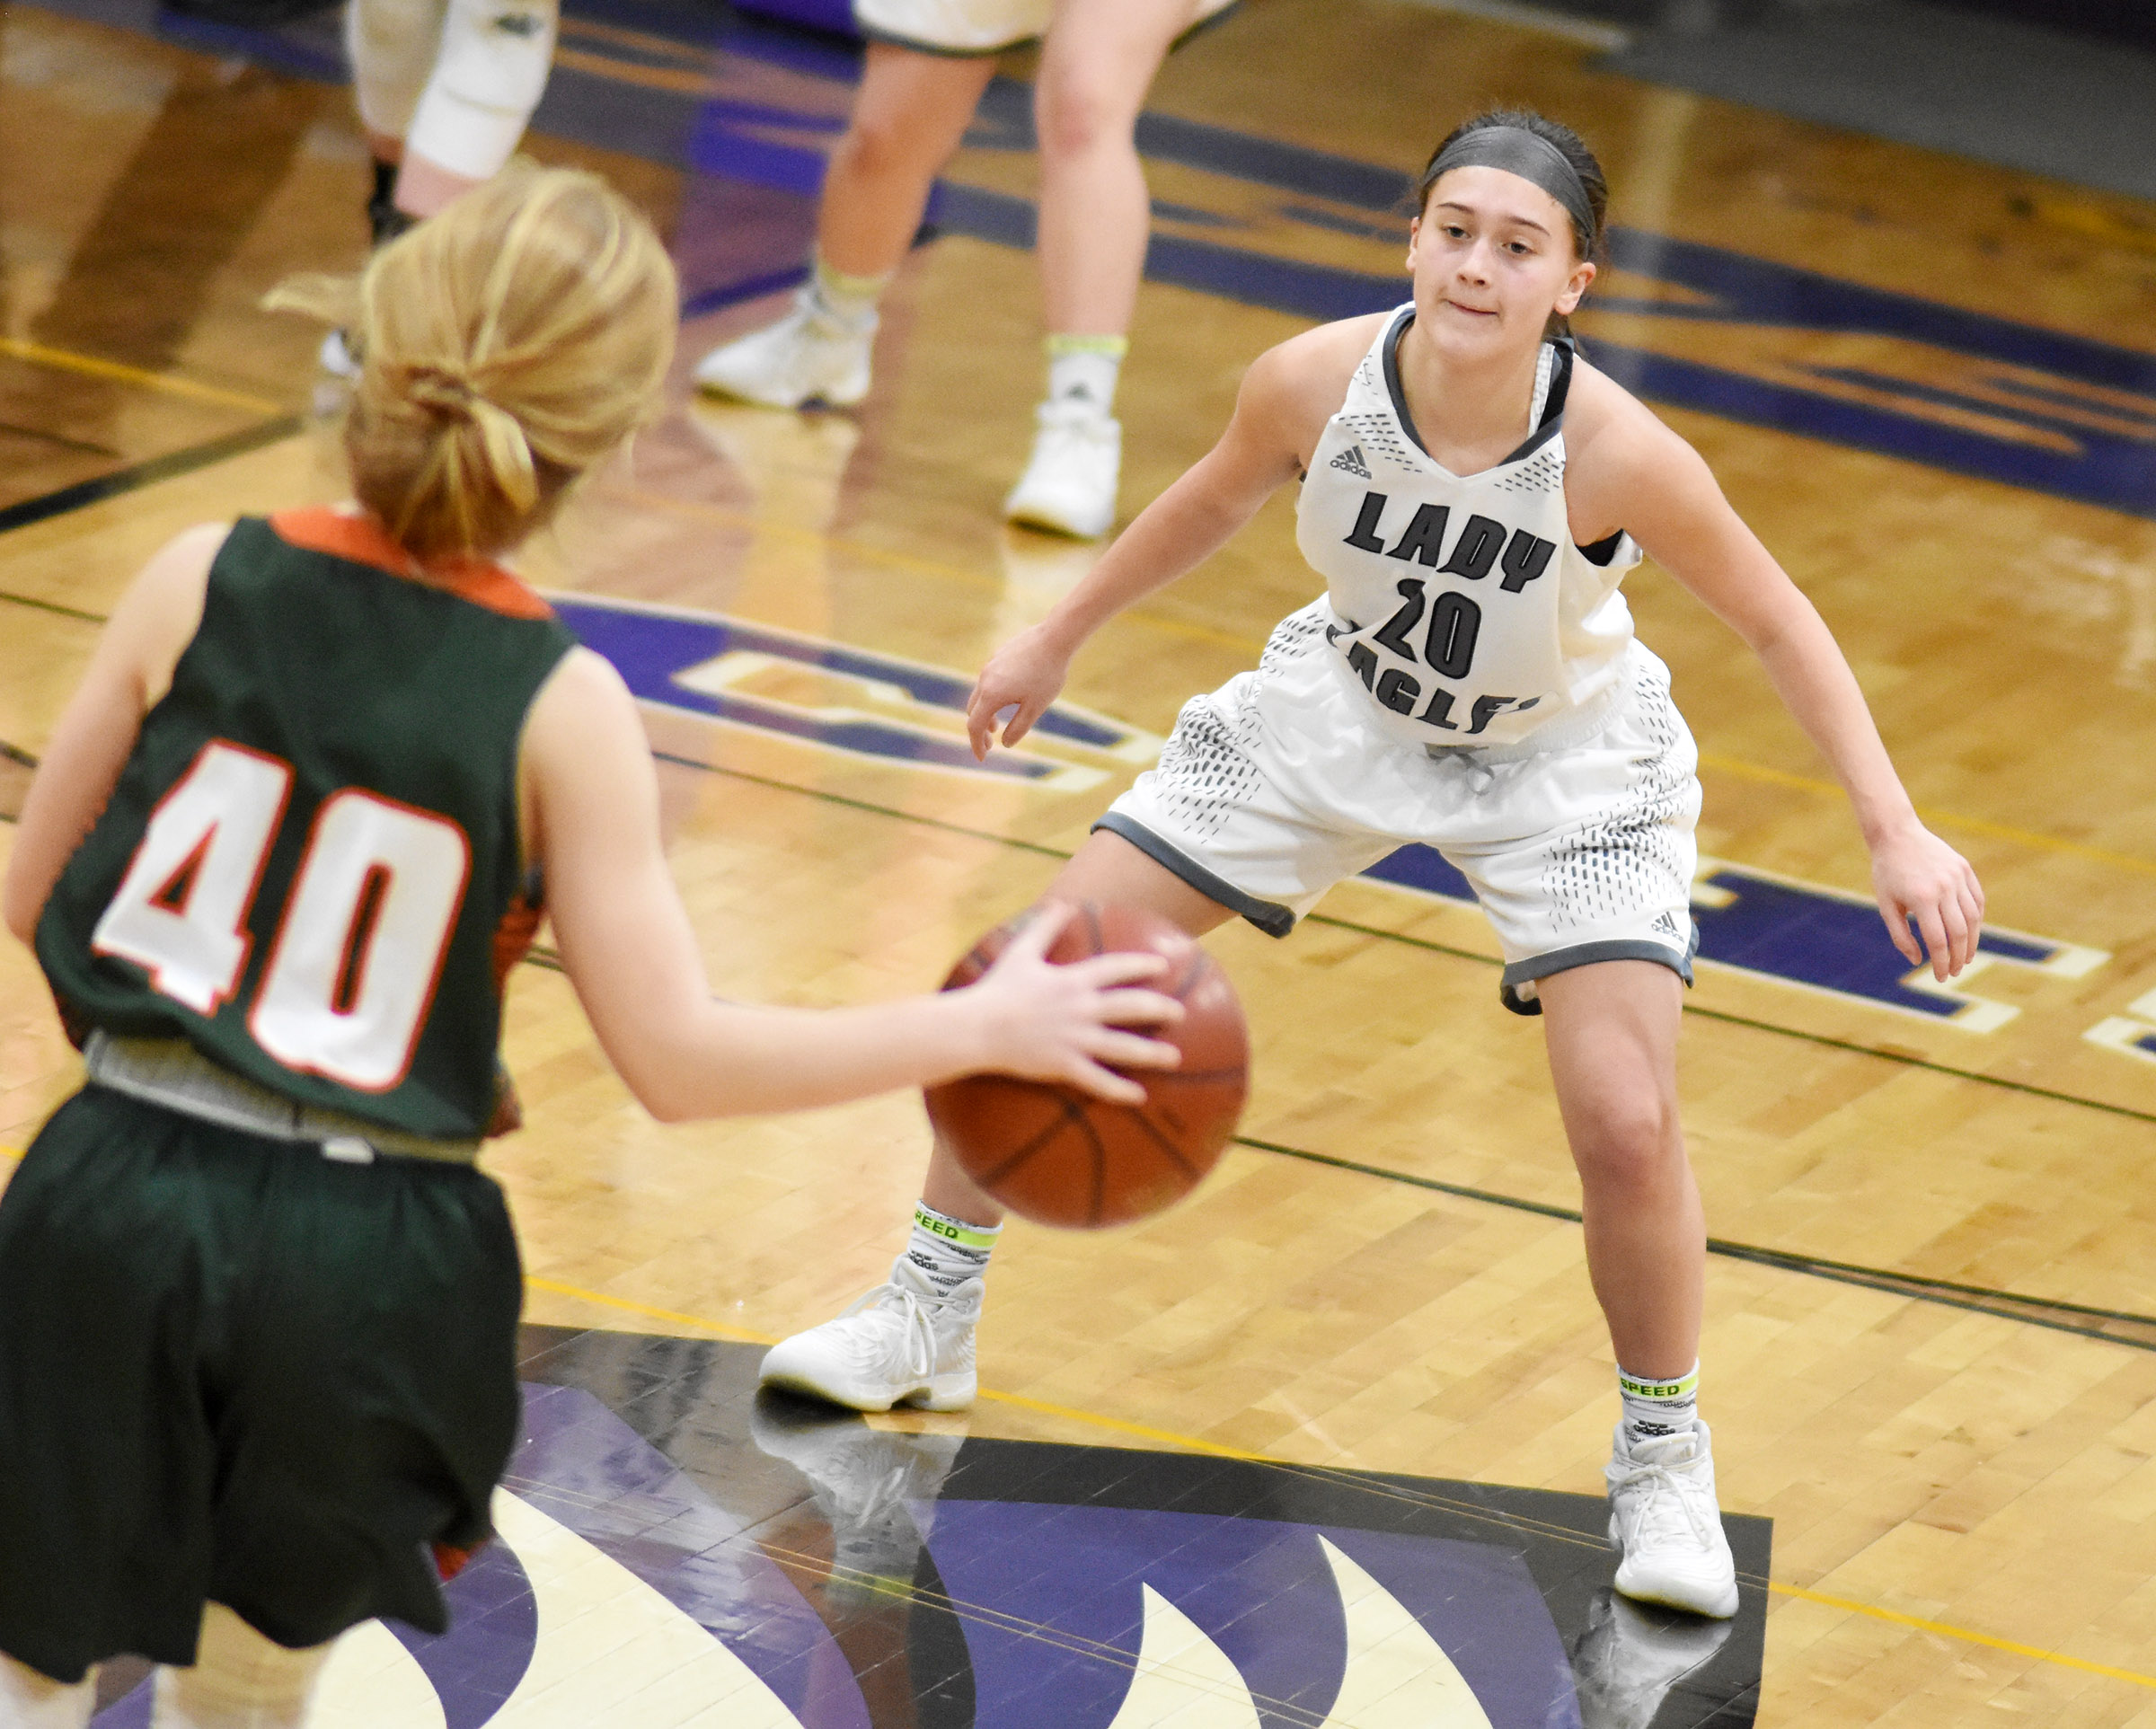 CHS sophomore Bailey Thompson plays defense.